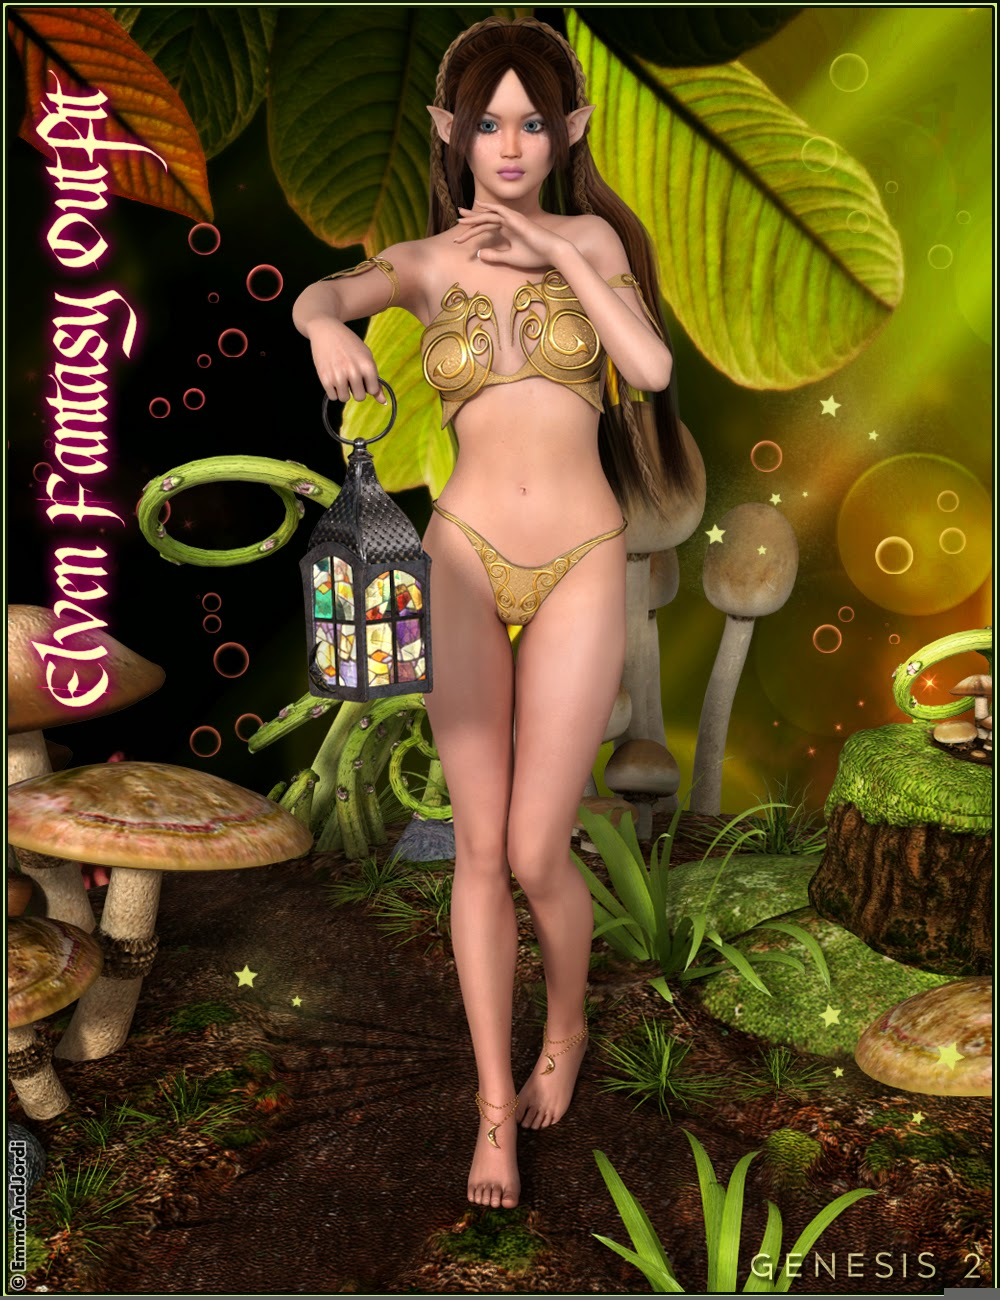 http://www.daz3d.com/elven-fantasy-outfit-for-genesis-2-female-s